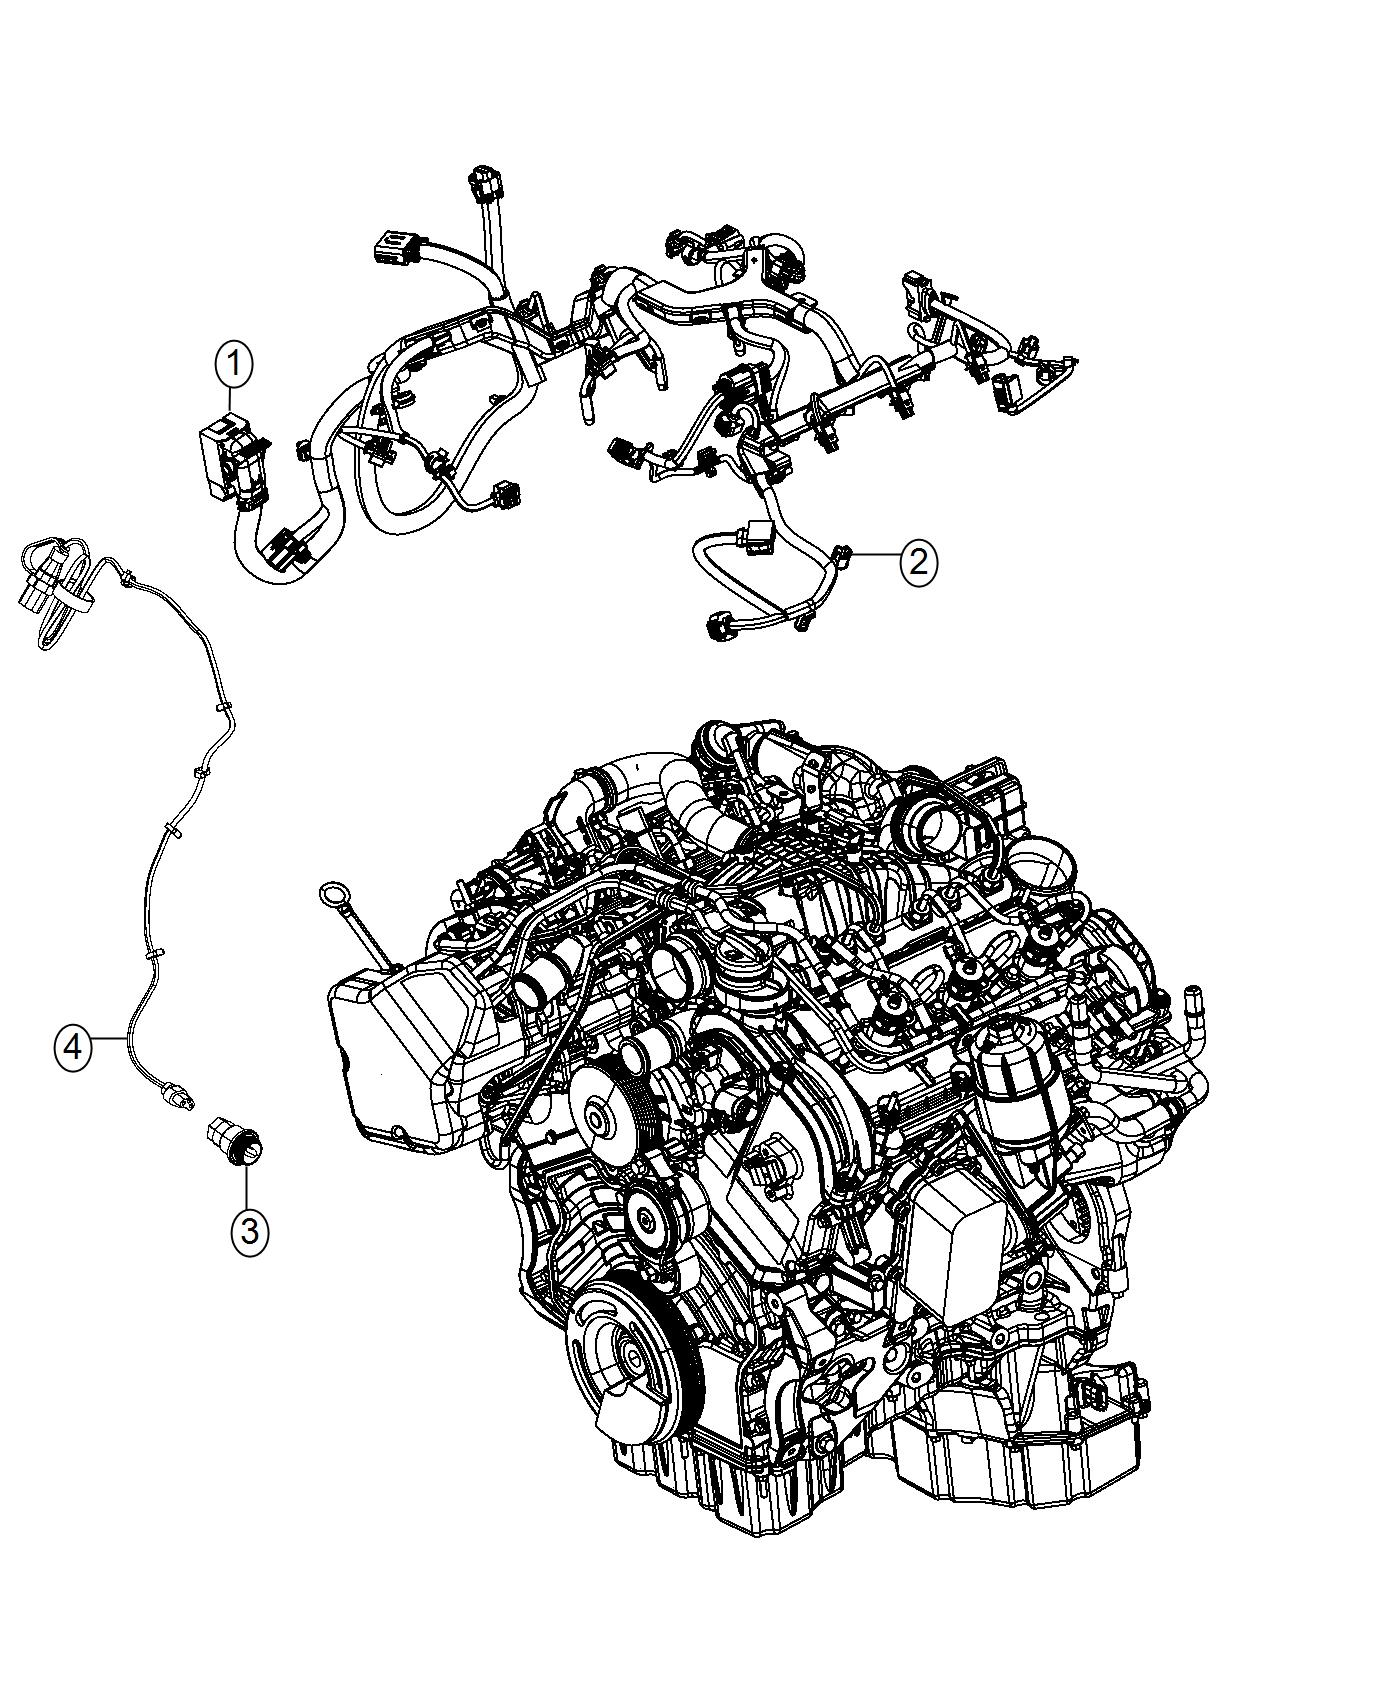 Jeep Grand Cherokee Wiring. Injector. [50 state emissions